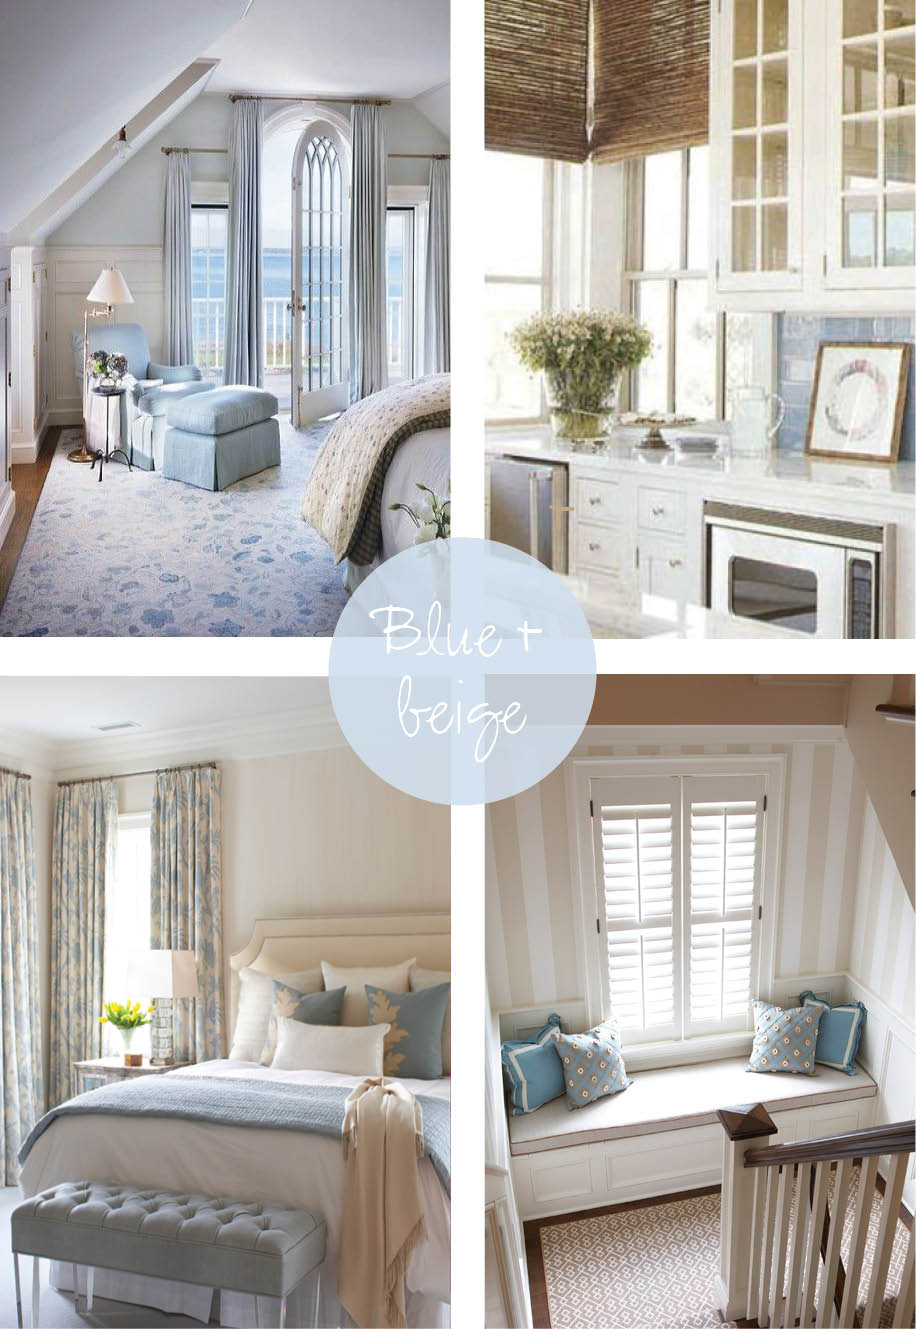 Pale Blue Beige H tons Style in addition French Country Kitchen Cabi s in addition 307441112033335888 as well Mahogany  puter Desk Large With Leather Top And Brass Handles DSK003S 60 also Chesterfield Sofas Couches. on classic home furniture hampton